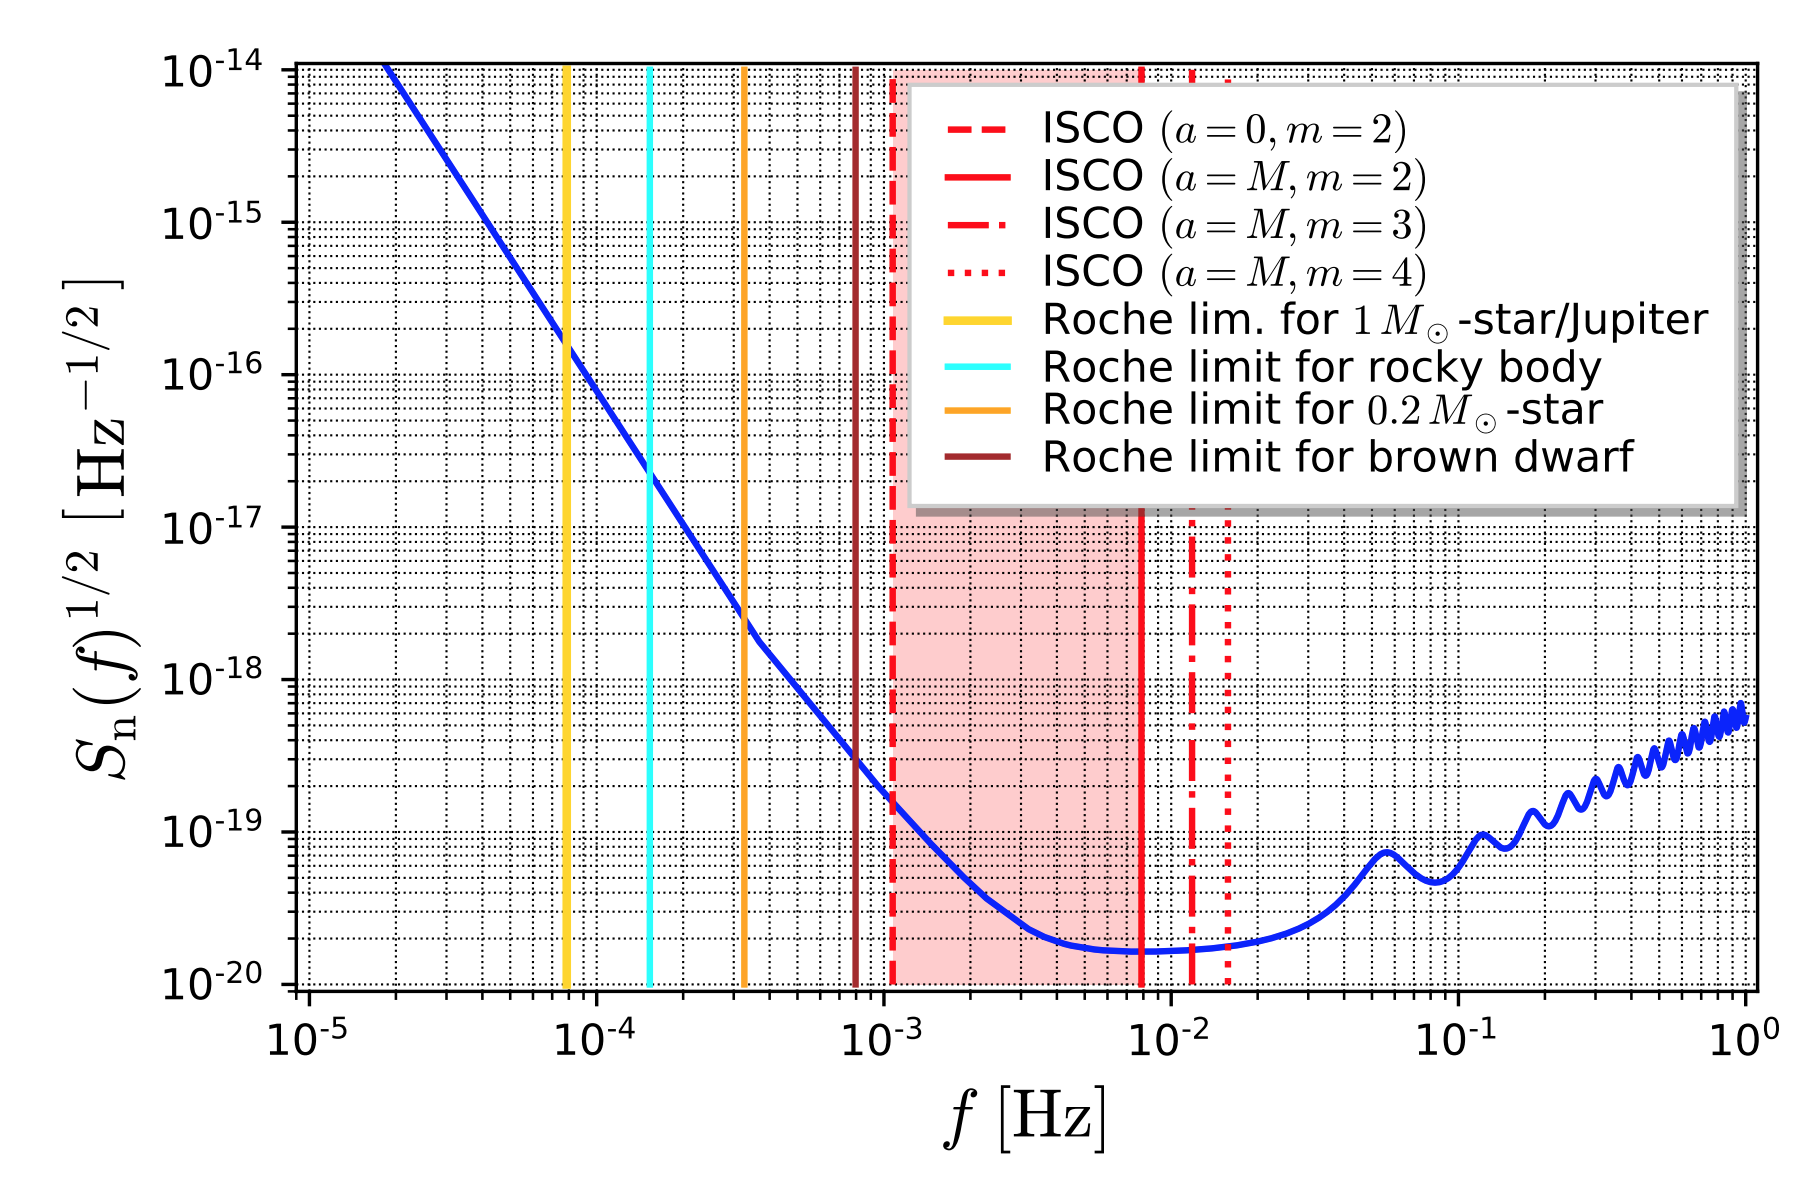 LISA sensitivity curve and various gravitational wave frequencies from circular orbits around Sgr A*